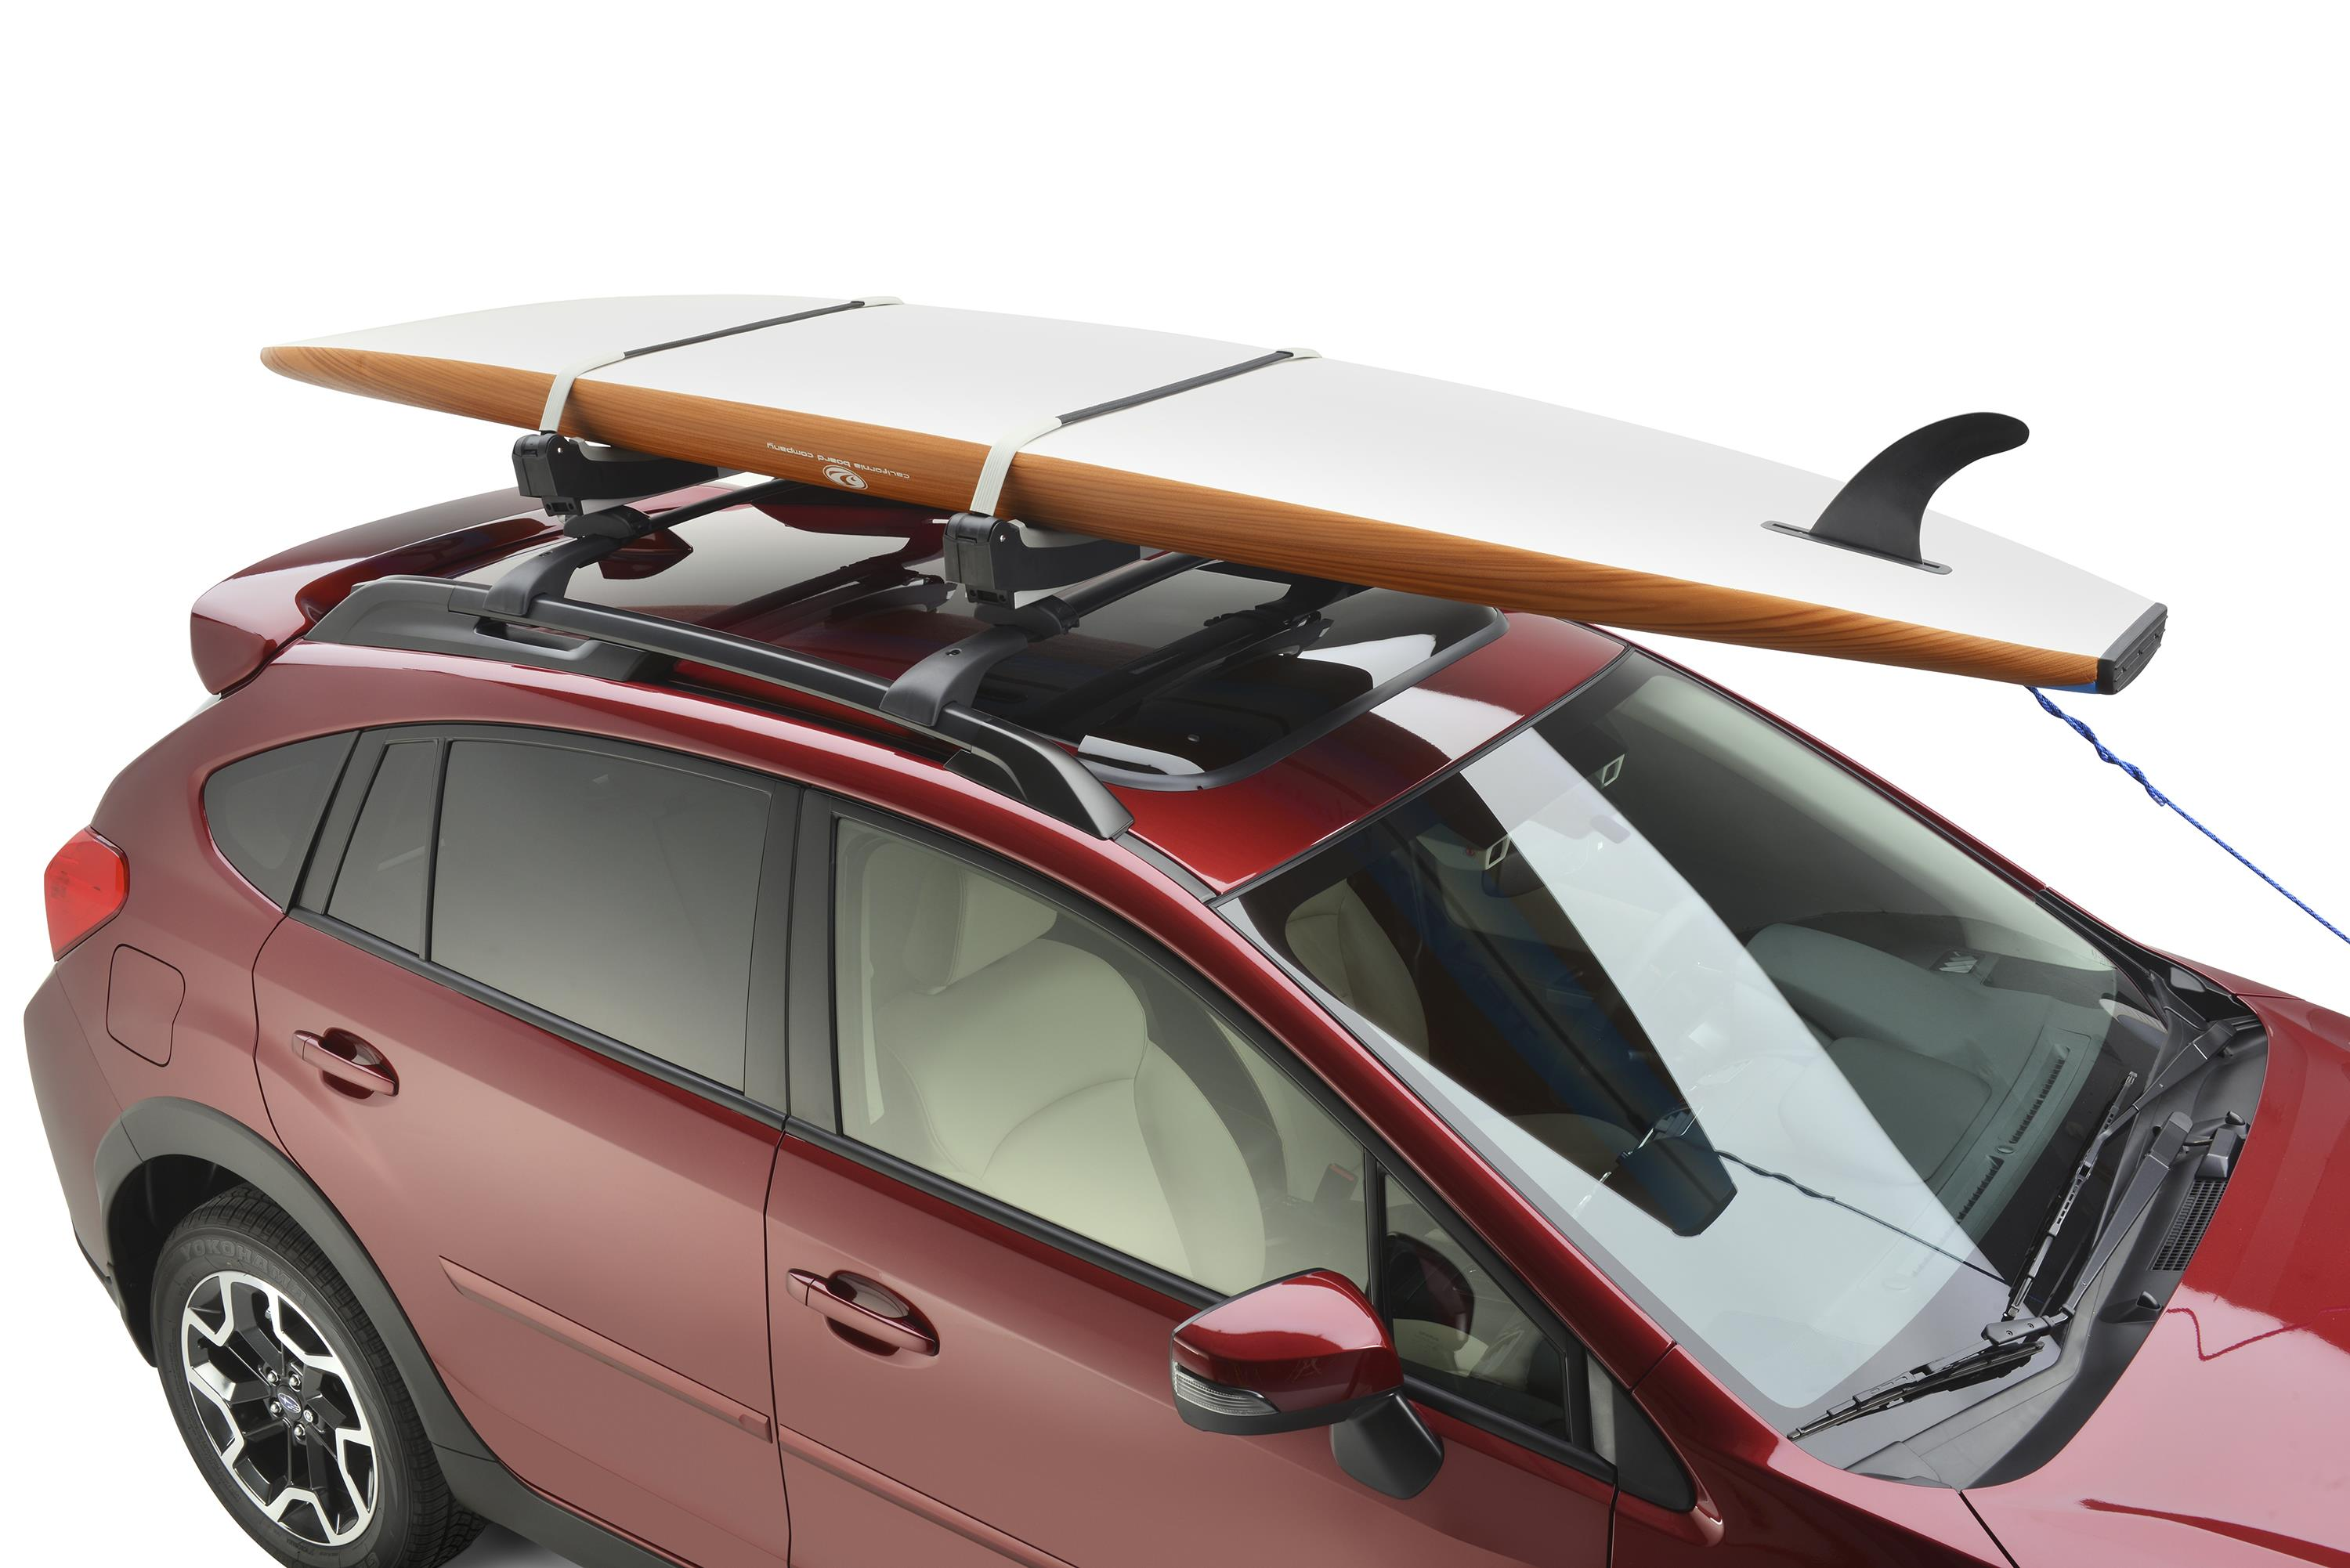 Thule Roof Rack Subaru Impreza 2016 in addition Thule Roof Rack Systems Thule Roof Bars Ors Racks Direct further Subaru Forester together with Autos Parrilla Consumen Hasta 25 Mas Gasolina likewise Showthread. on subaru forester ski rack